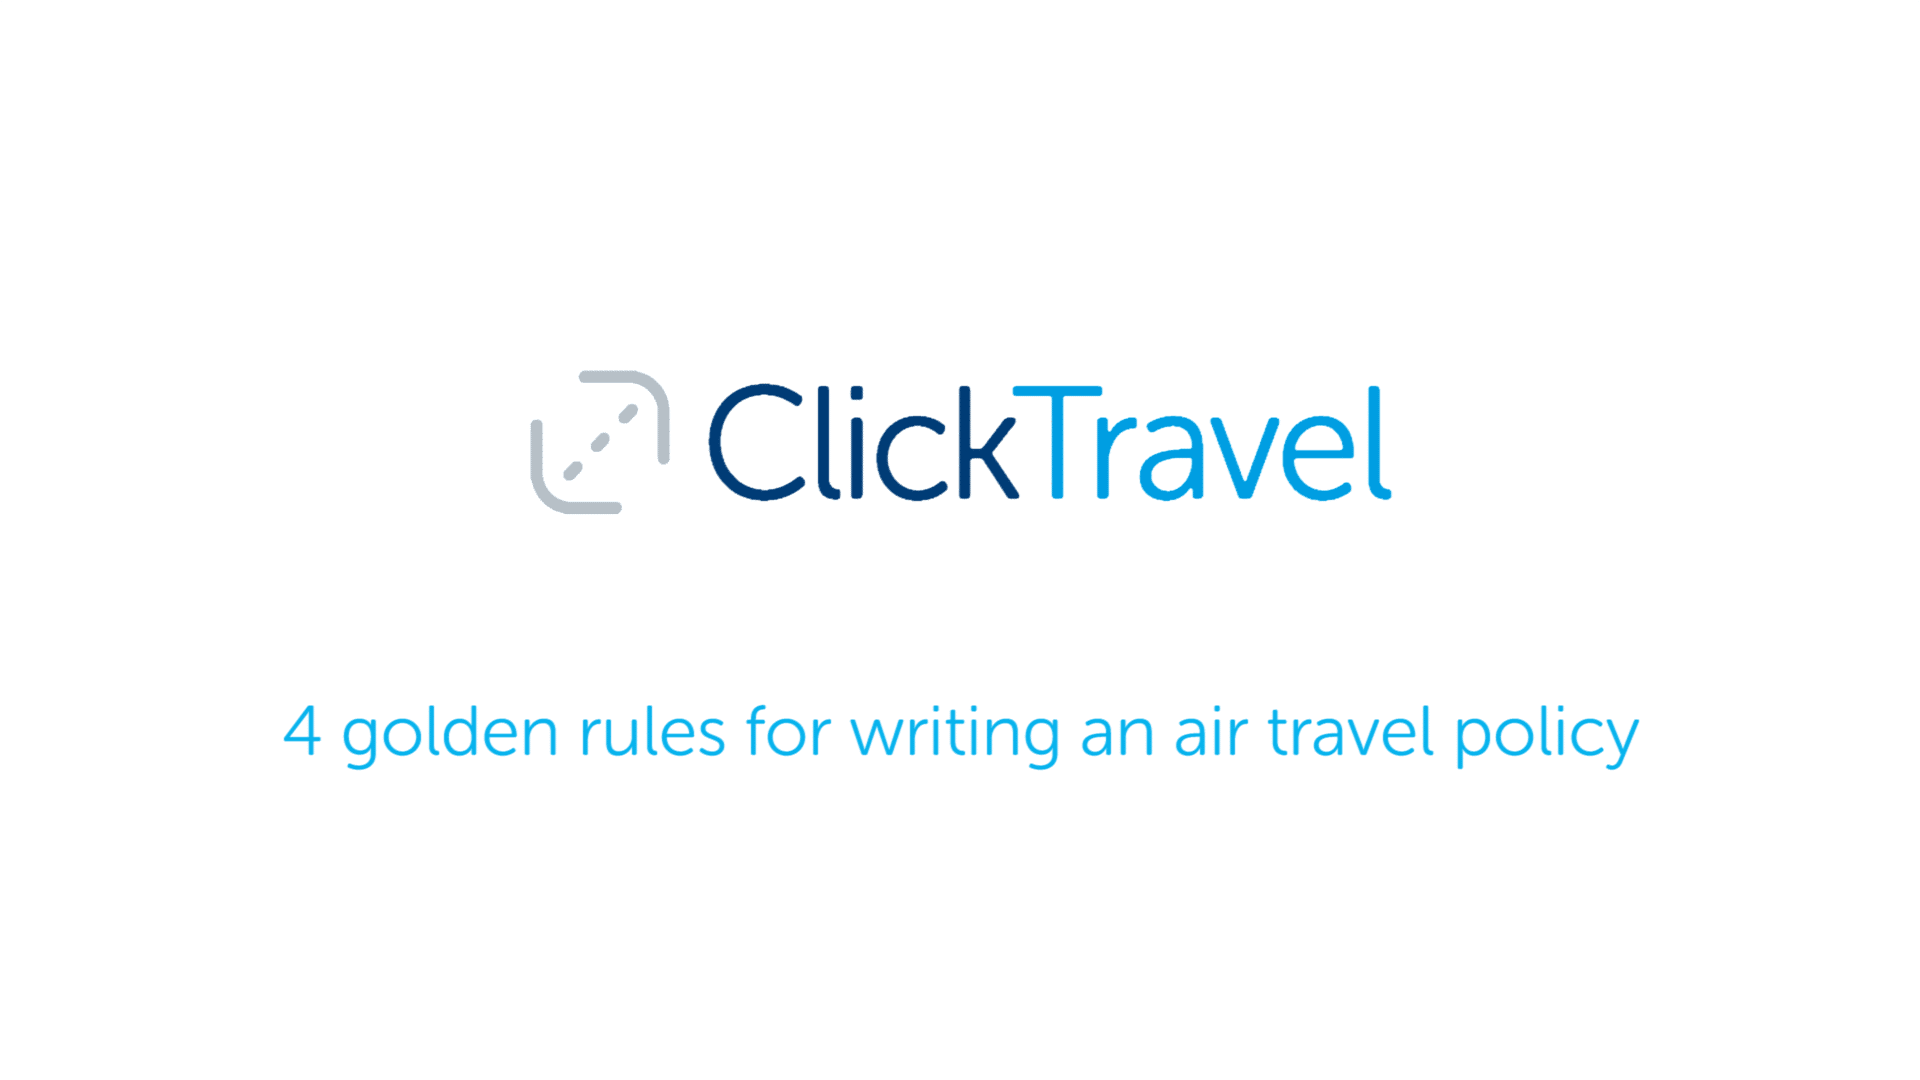 [VIDEO] 4 golden rules for writing an air travel policy